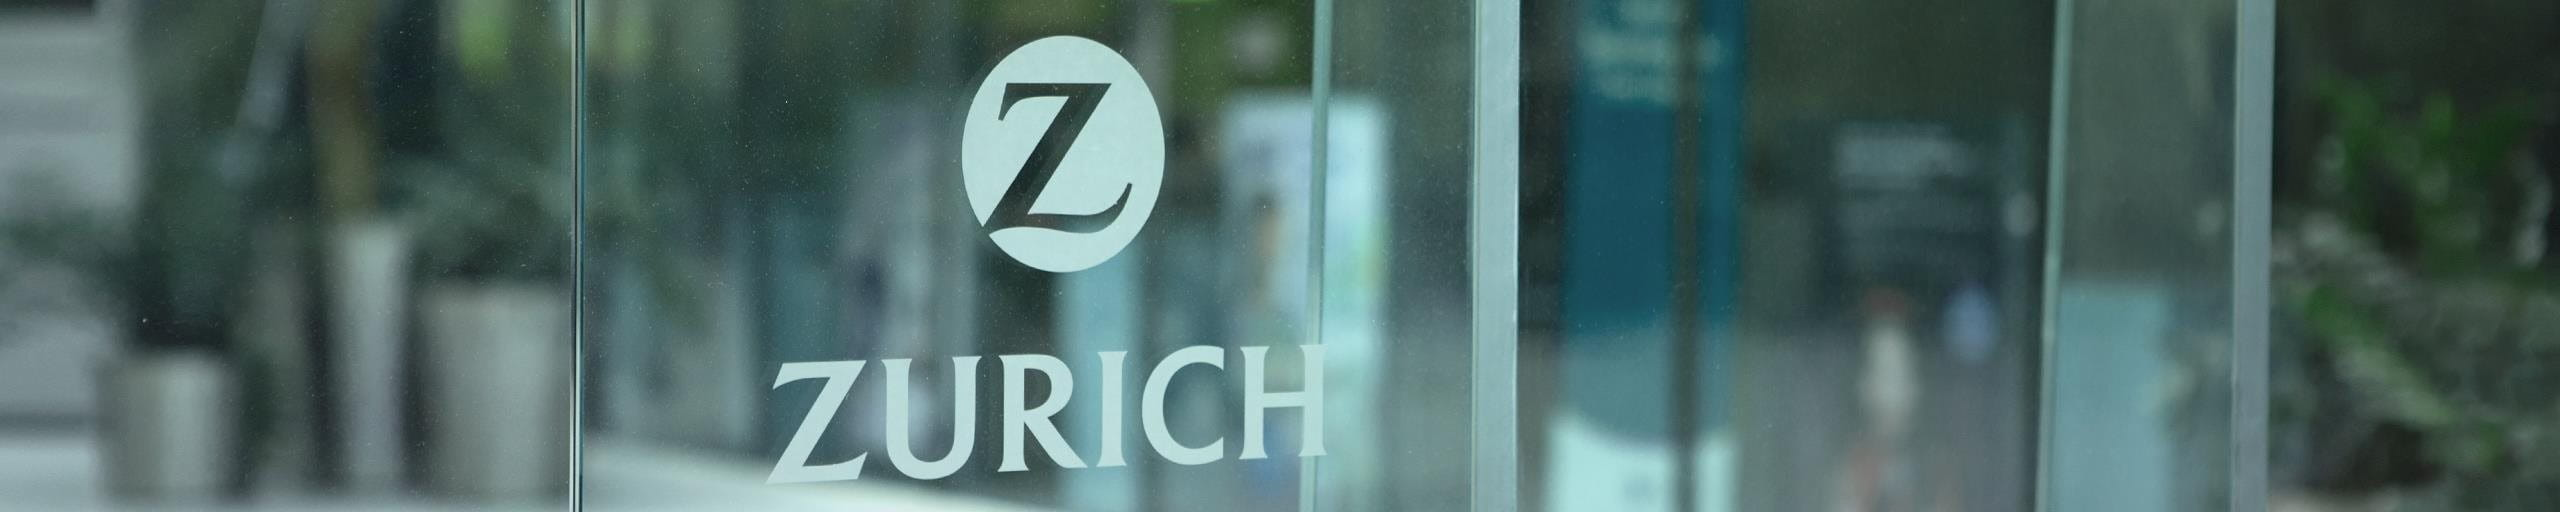 The Zurich logo attached to a window.